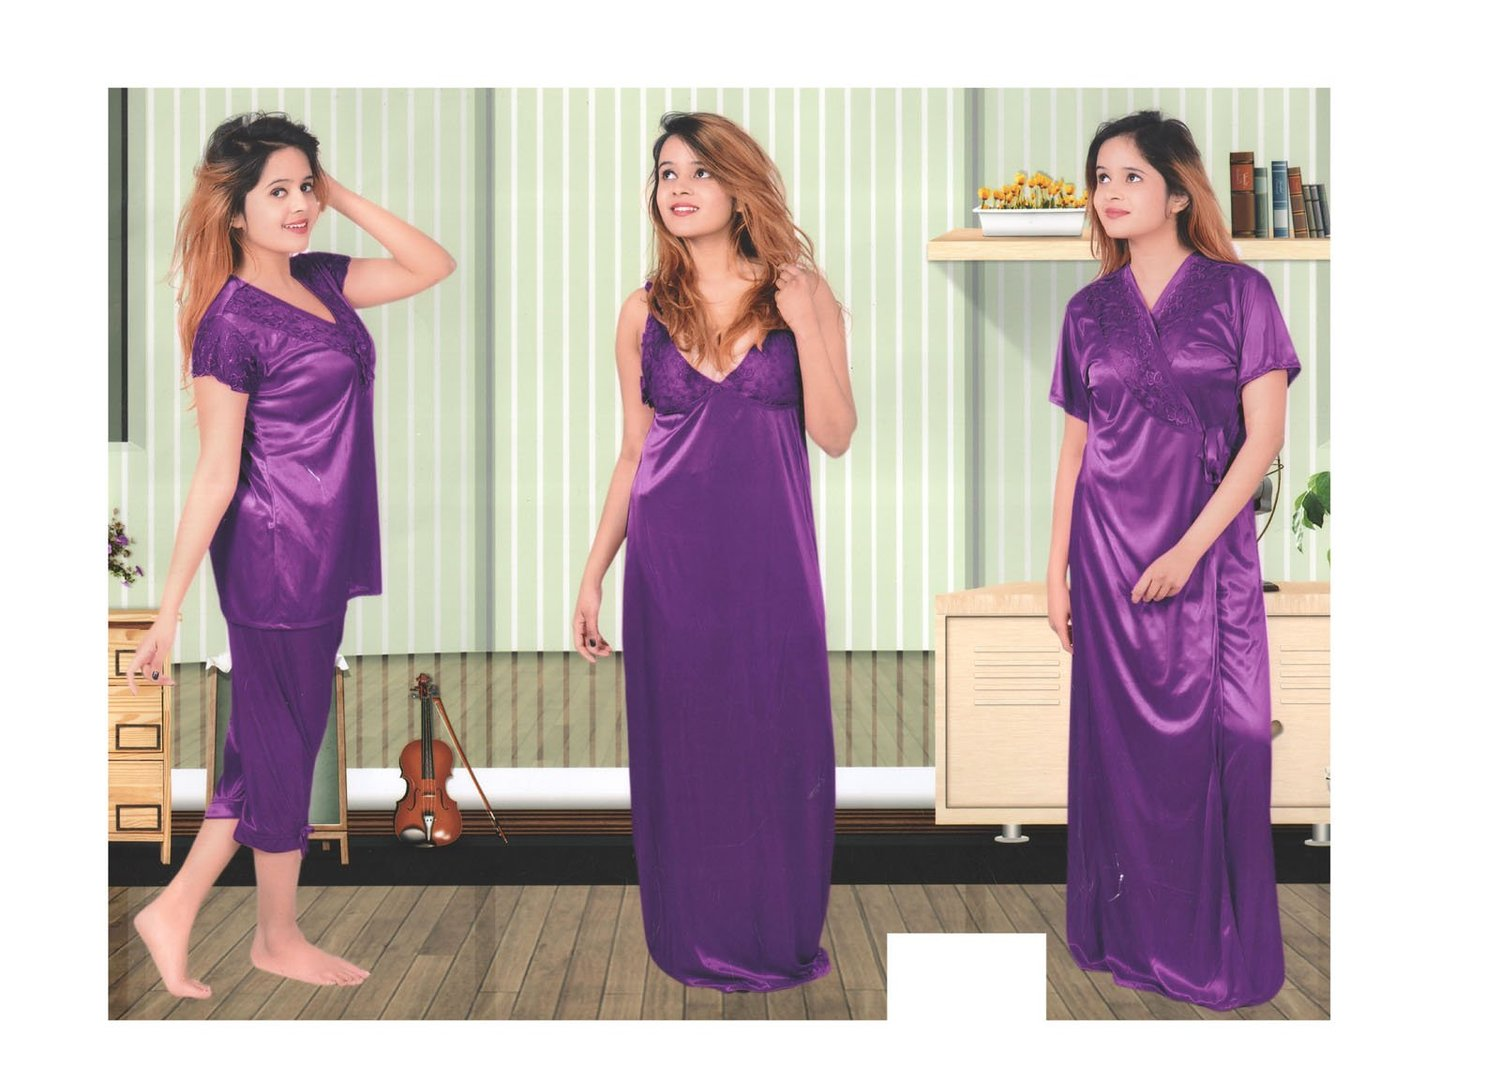 b2f003dbeb1 VISIT OUR ONLINE STORE   INDIATRENDZS